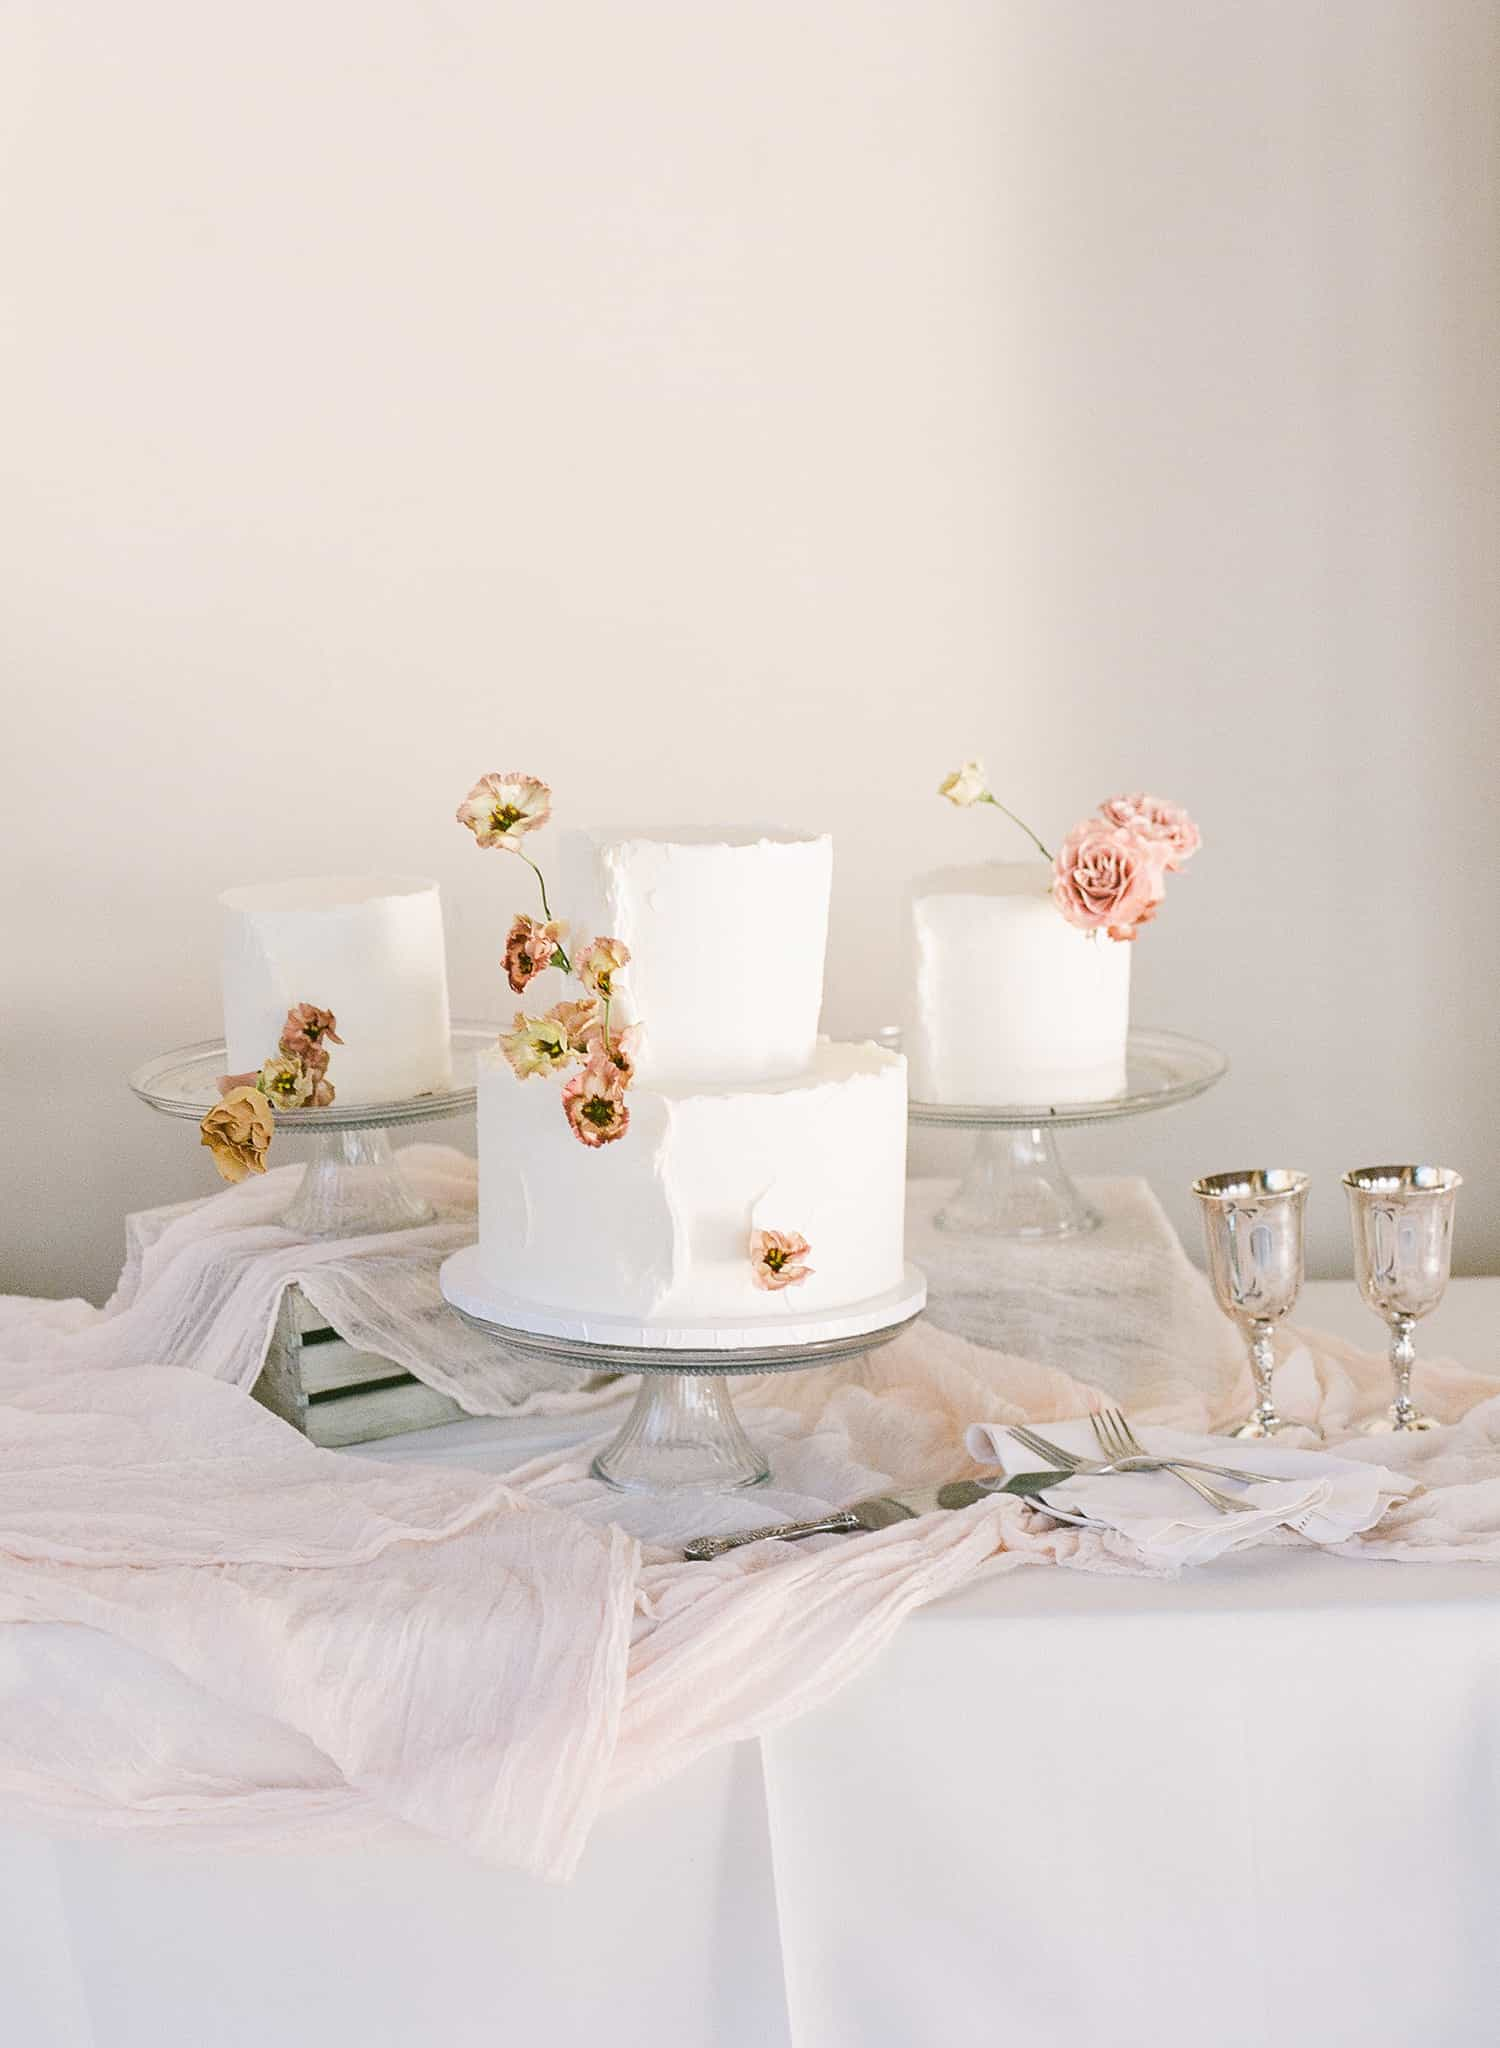 Wedding cake adorned with flowers by Color Theory Collective